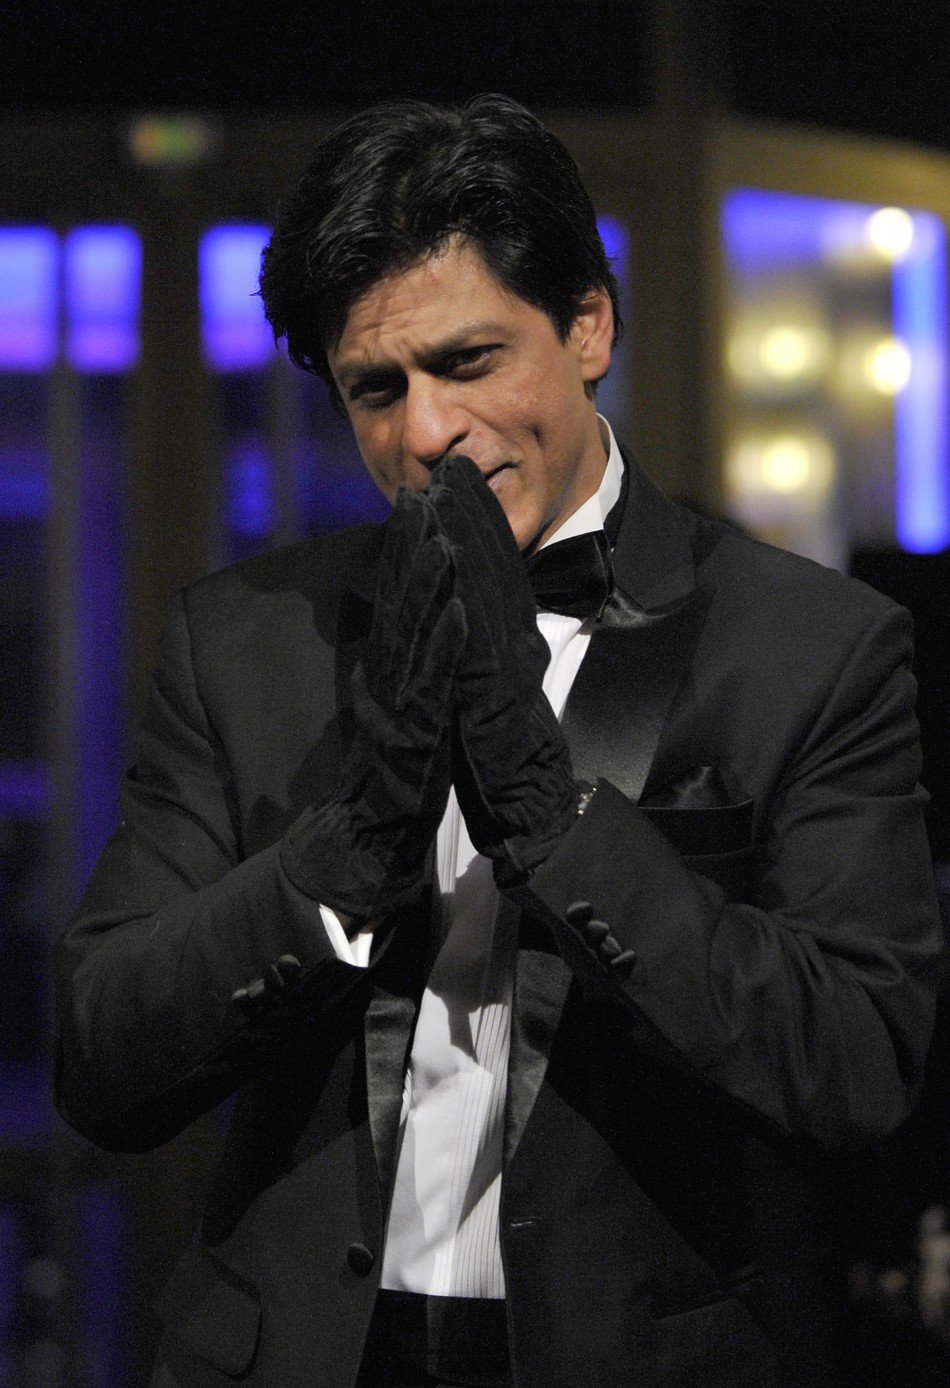 Bollywood actor Shah Rukh Khan, who has as much fan following in Europe as in India, will perform in Sydney for the first time this October. (Photo: REUTERS)